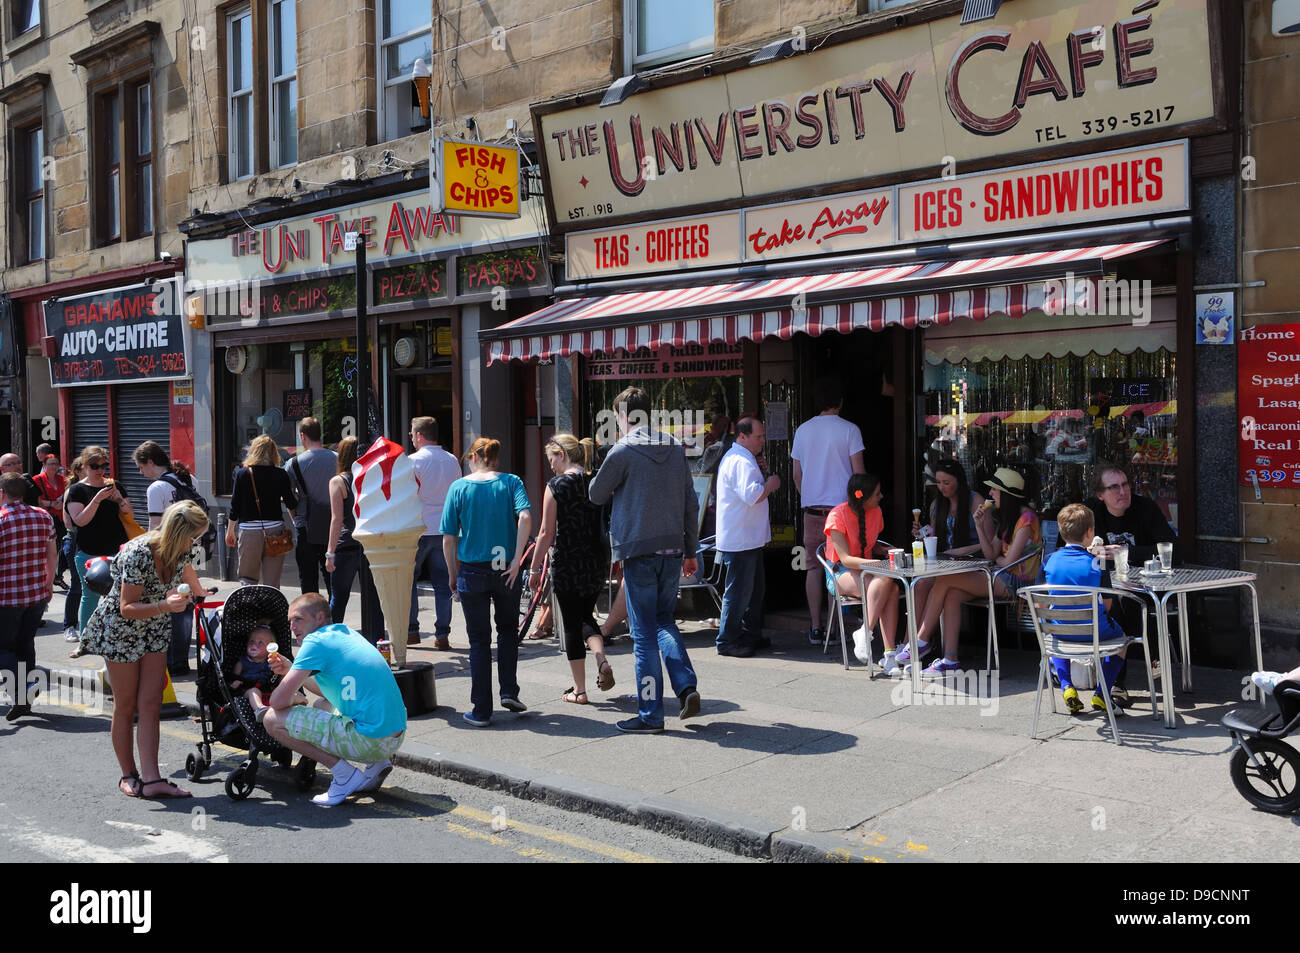 A busy street scene at the University Café on Byres Road, Glasgow, Scotland, UK - Stock Image